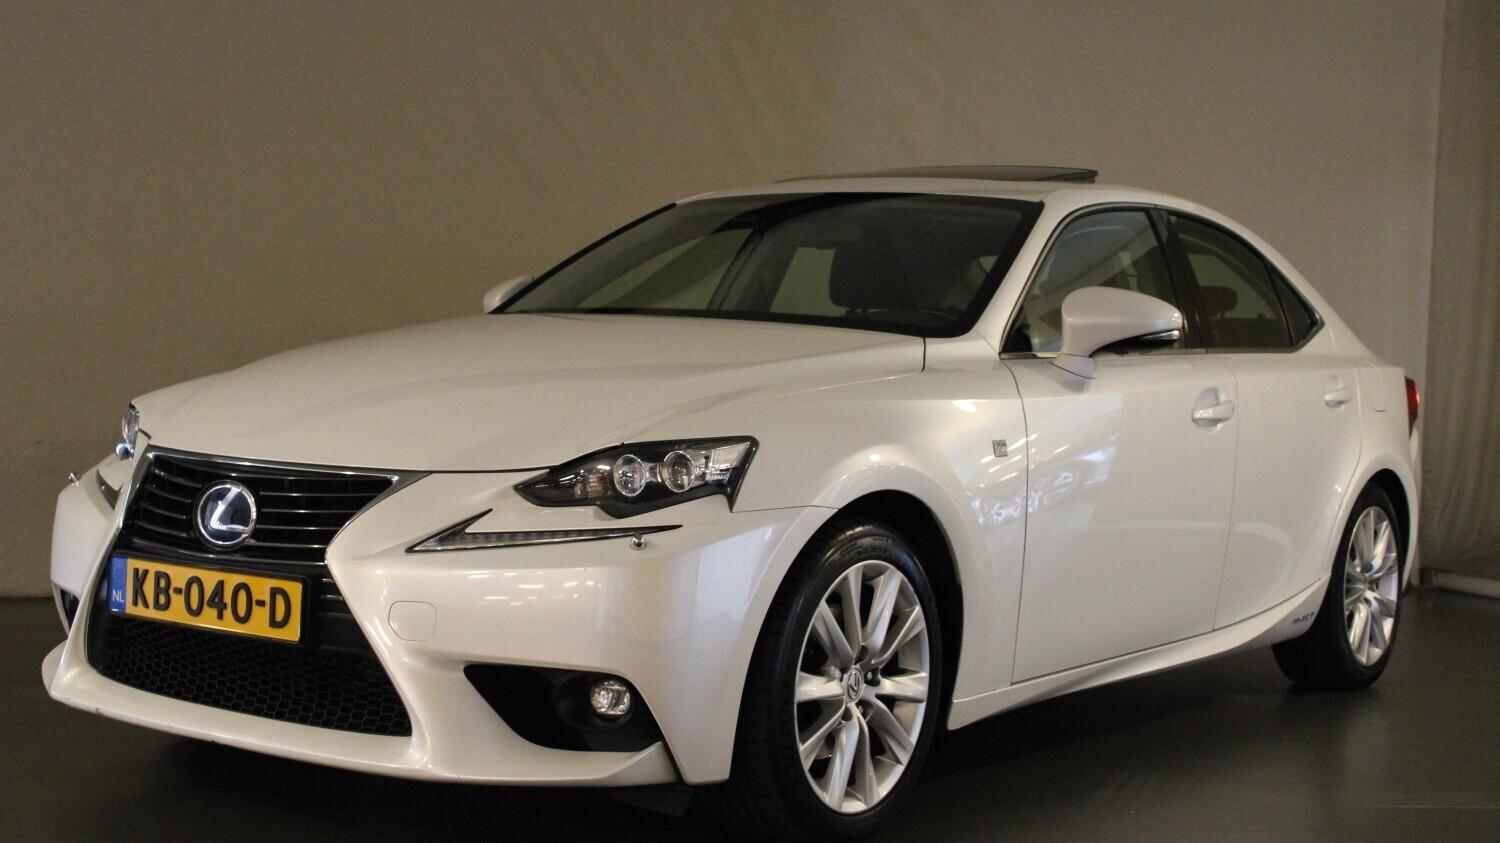 Lexus IS 300 Sedan 2016 KB-040-D 1